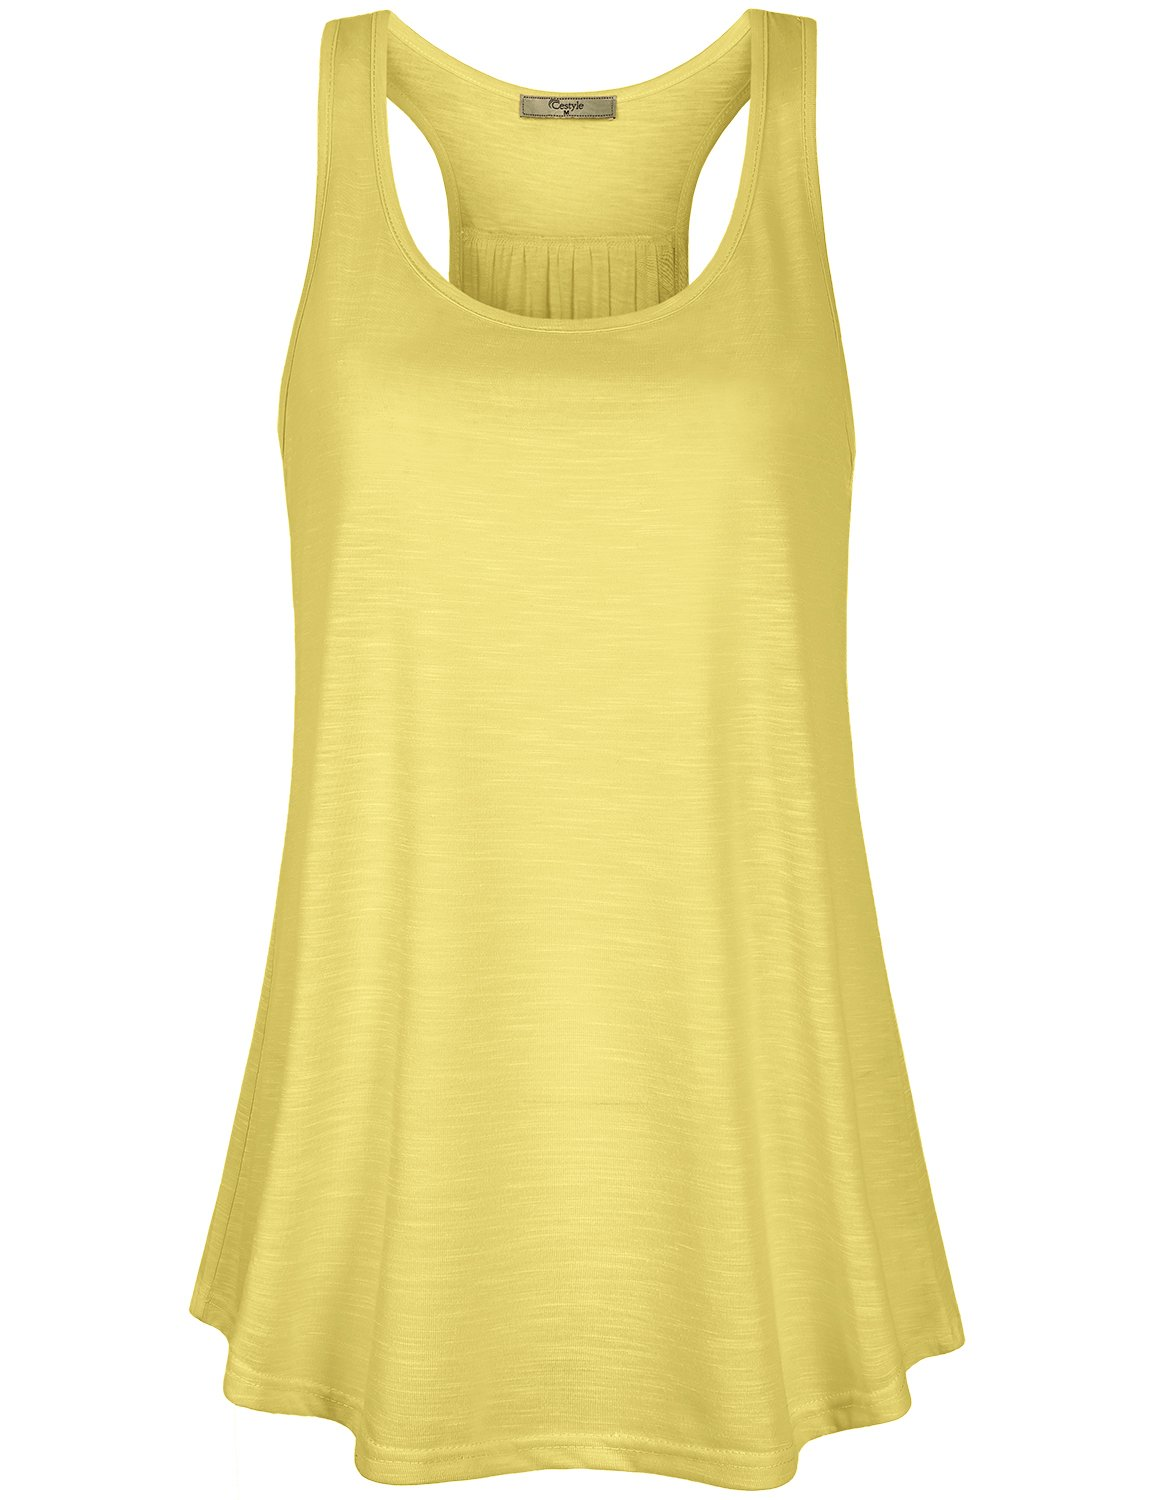 02d90f822f Cestyle Juniors Top,Teen Girls Summer Boutique Clothing Sleeveless Running  Tunic Tank Womens Knit Shirts and Blouses for Workout Yellow Small